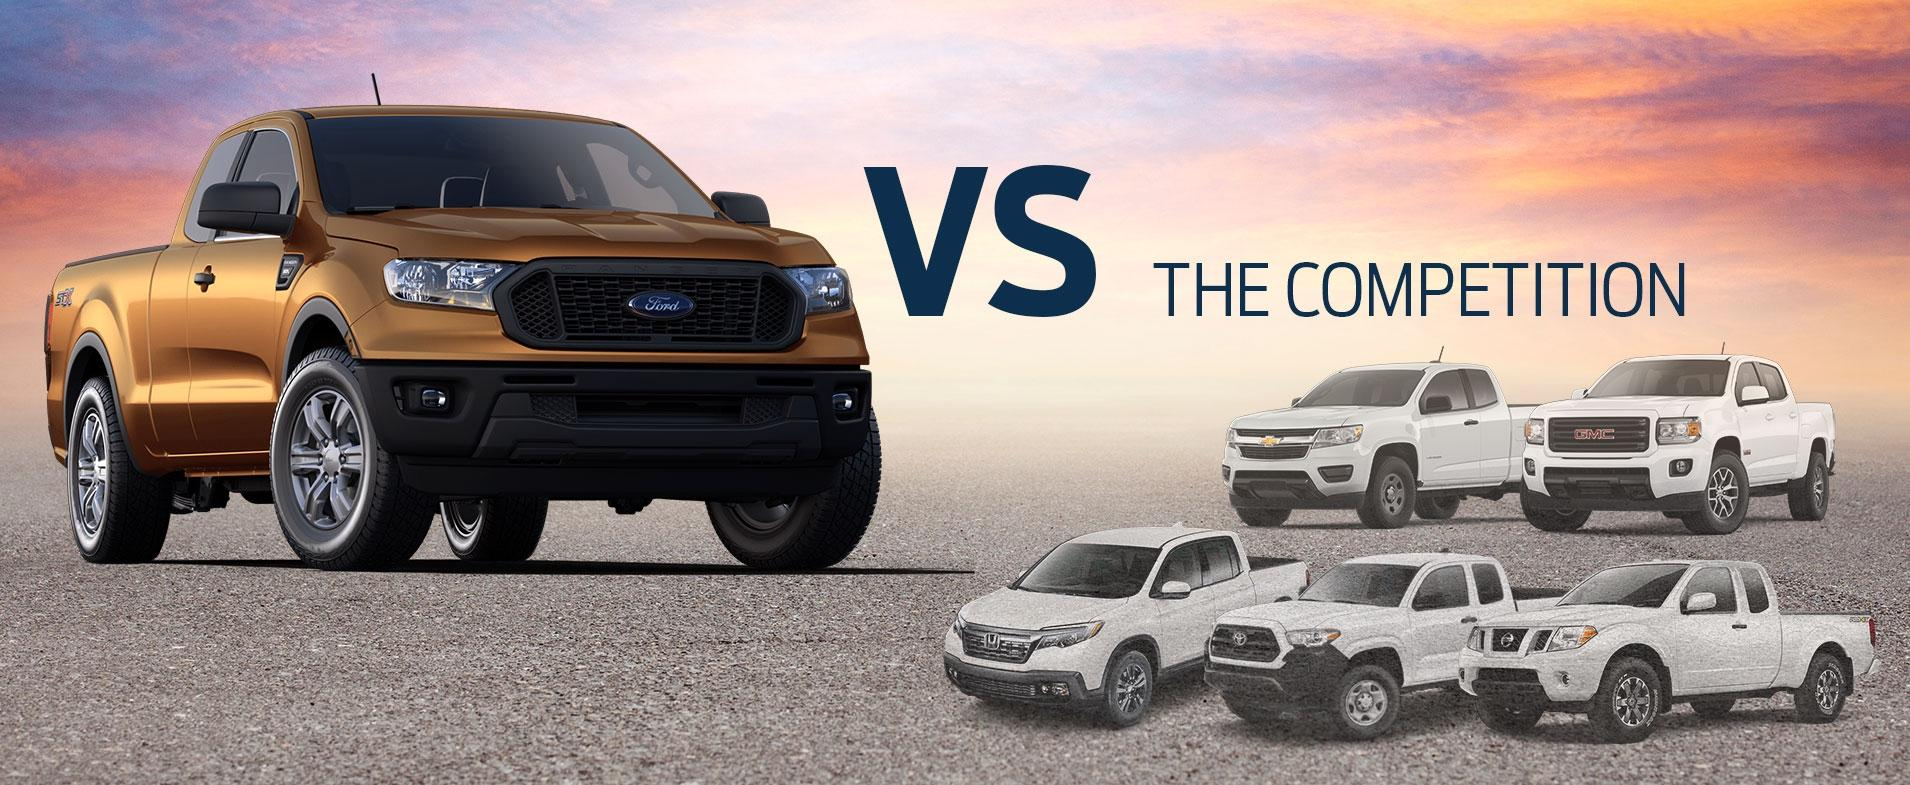 Ranger vs Competition